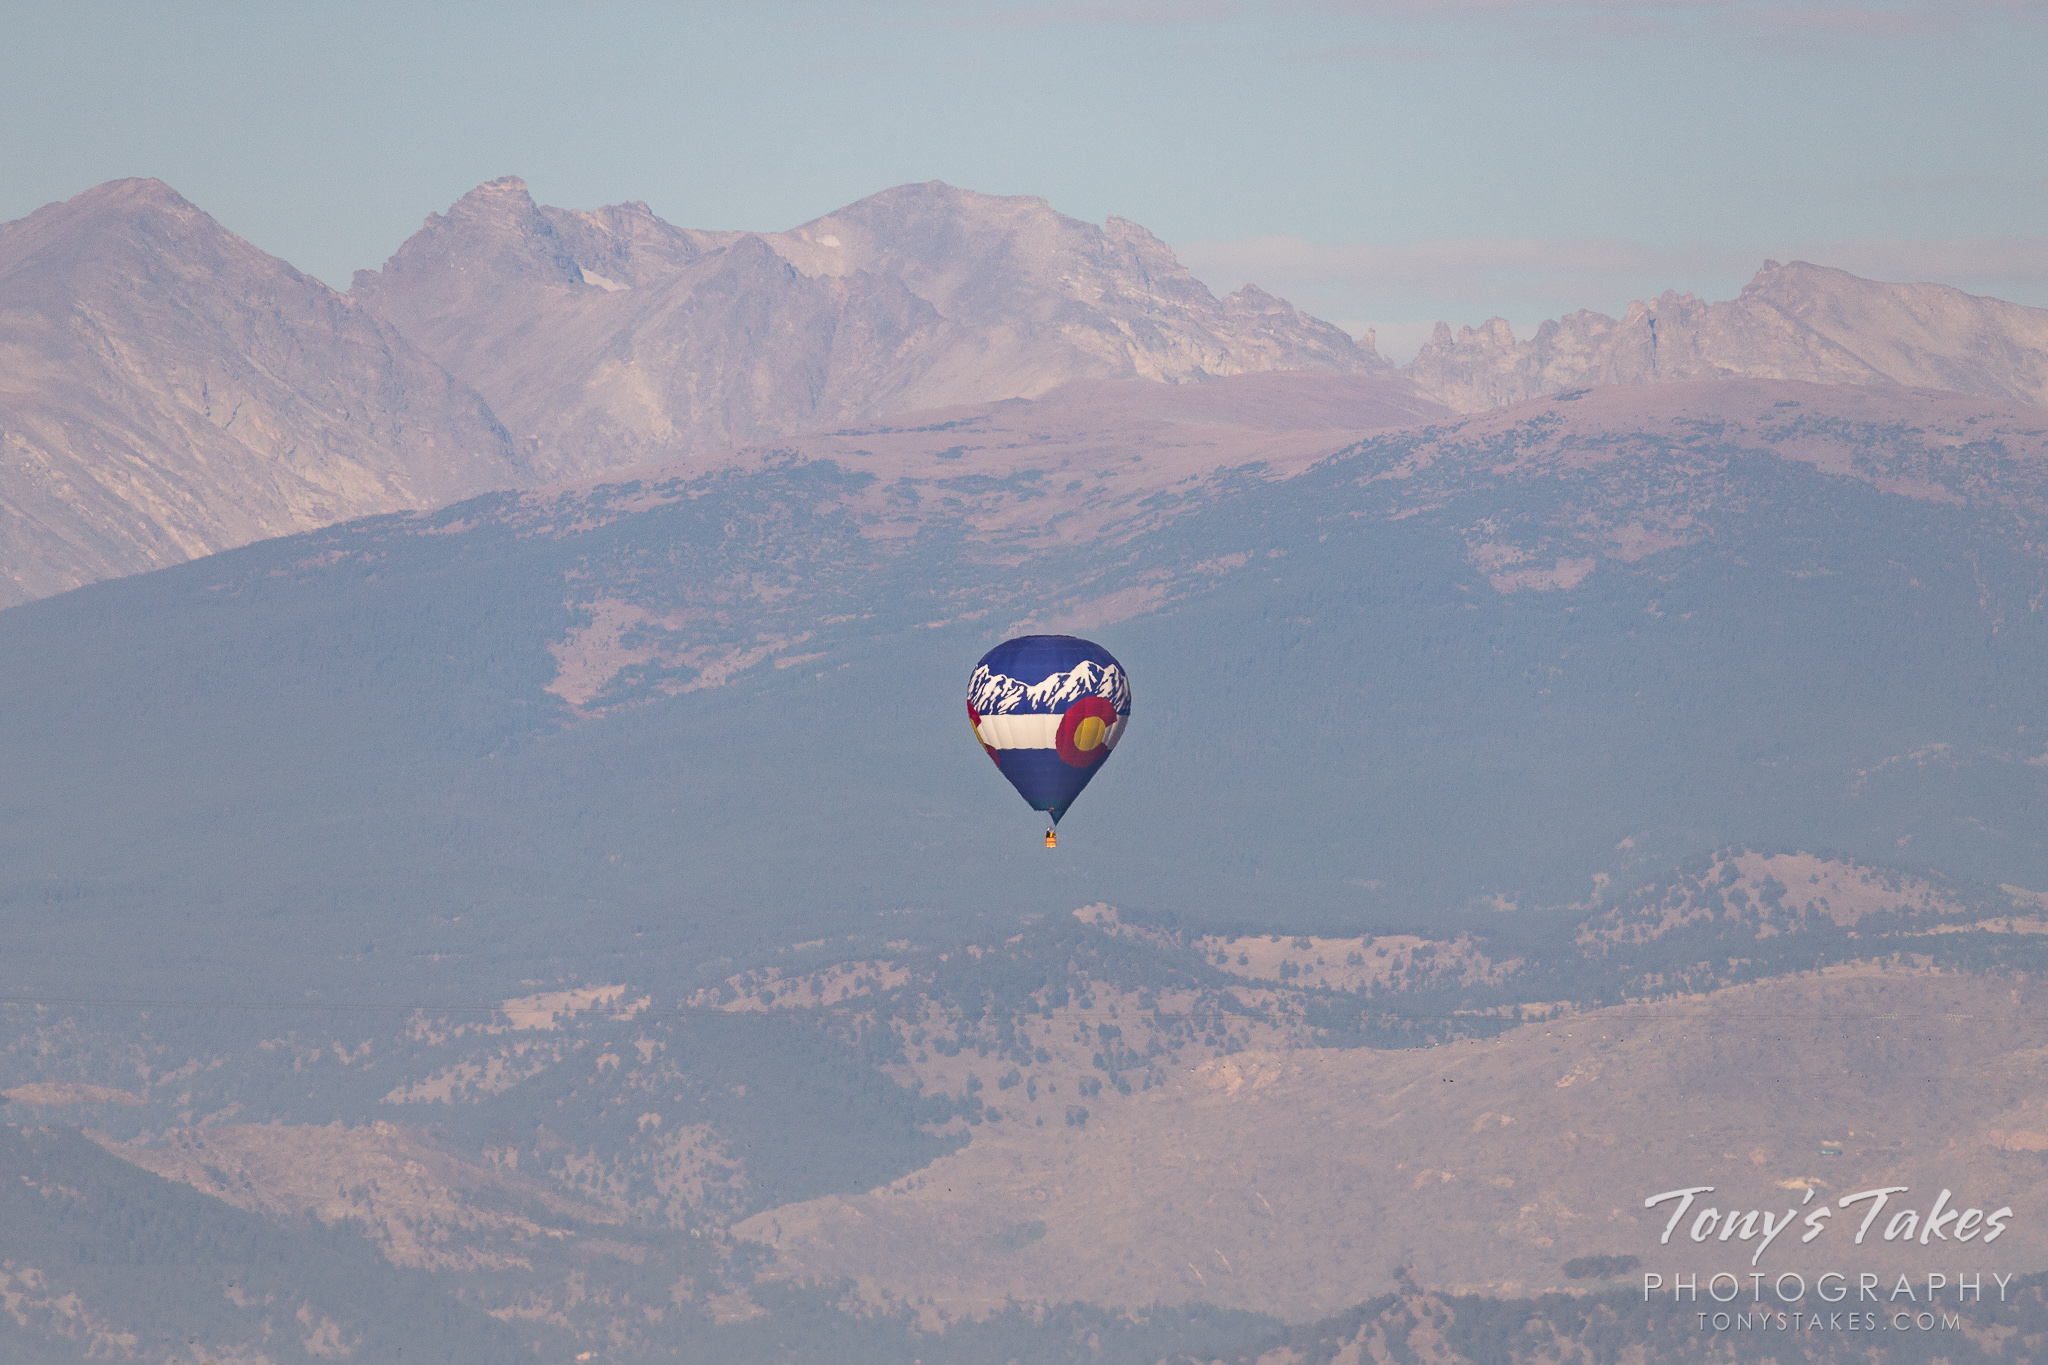 Colorado's Rocky Mountains and a Centennial State balloon